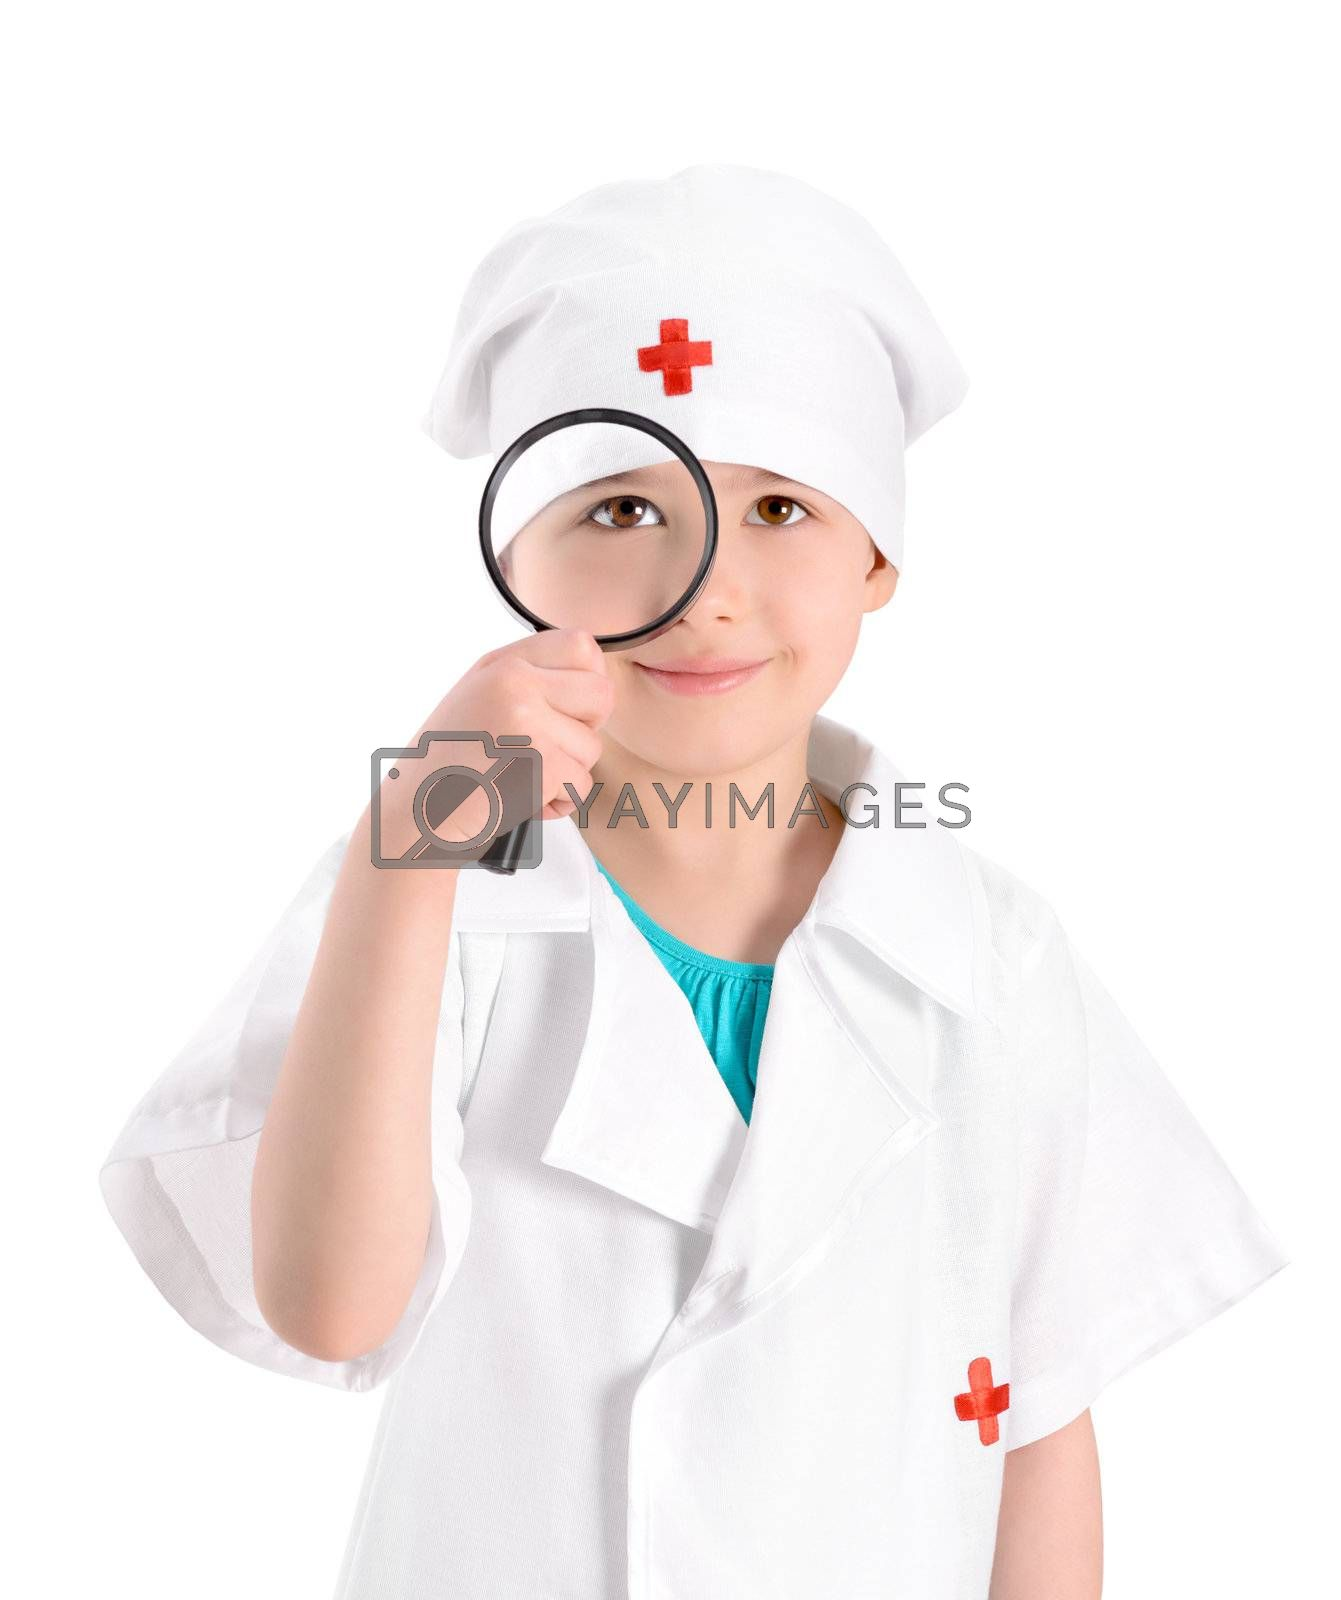 Portrait of a smiling little girl wearing as a nurse on white uniform and holding in right-hand a magnifying glass in front of her eye. Isolated on white background.